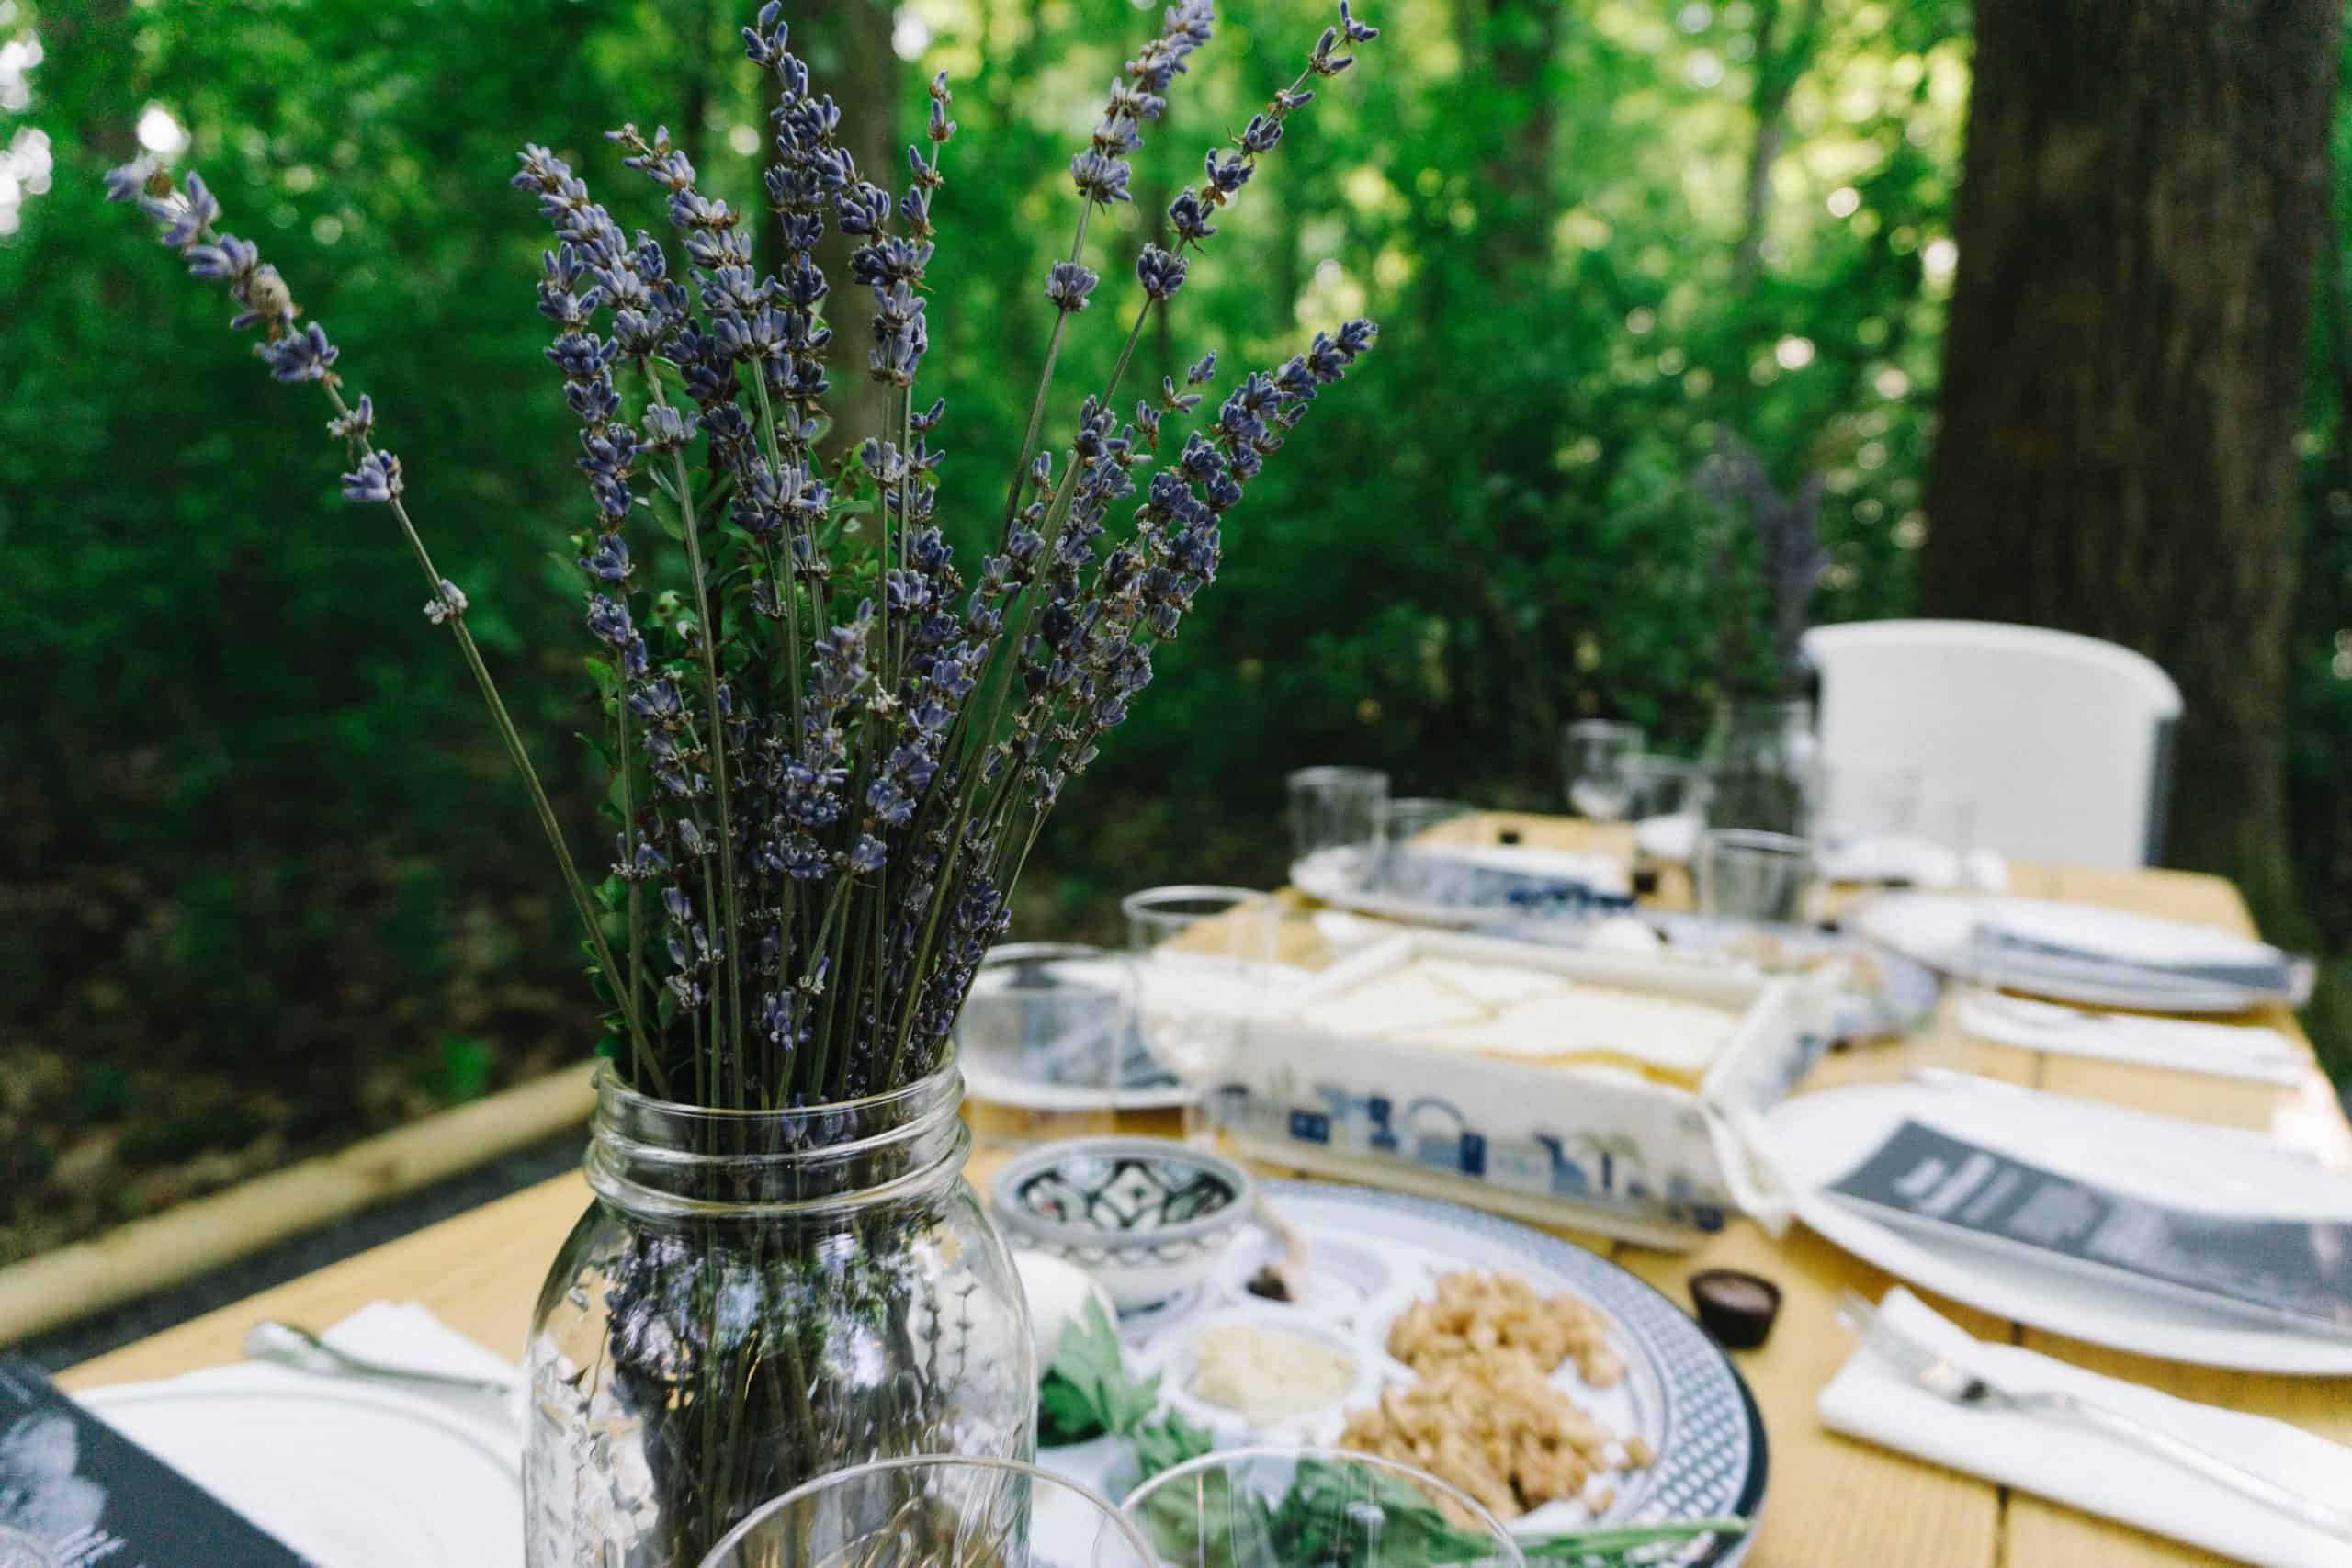 Passover recipes and crafts - purple flowers in a jar at outdoor seder with seder plate and matzah